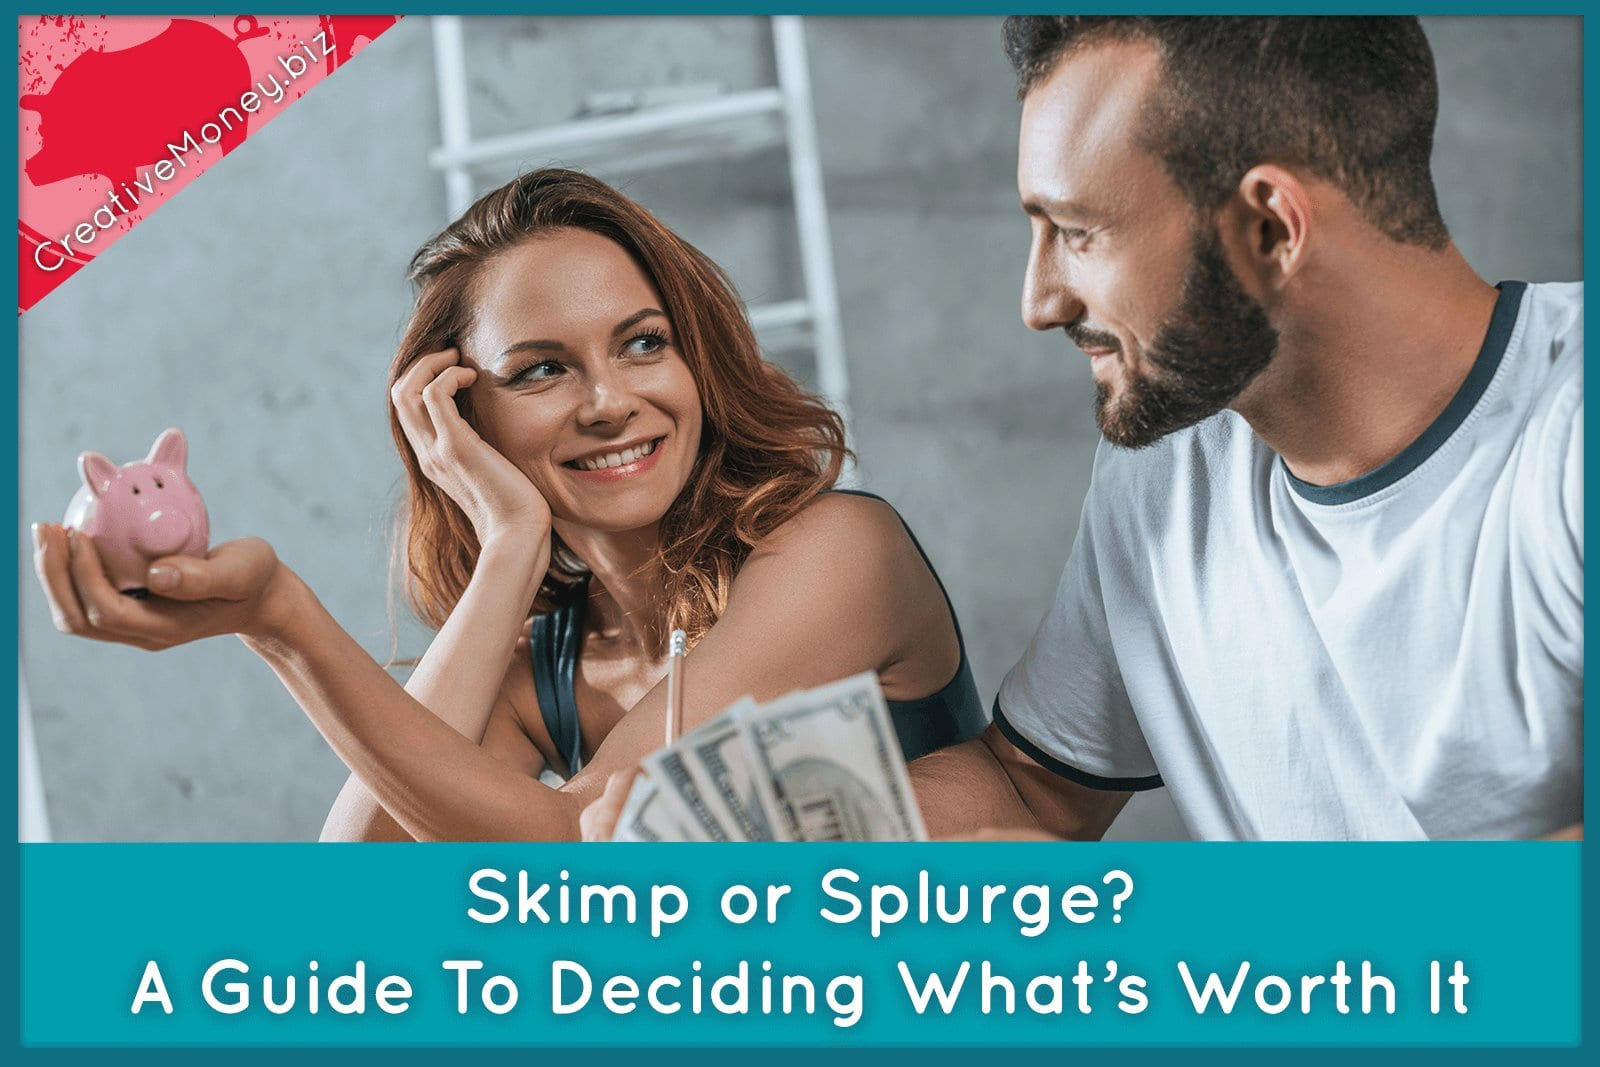 Skimp or Splurge? A Guide to Deciding What's Worth It